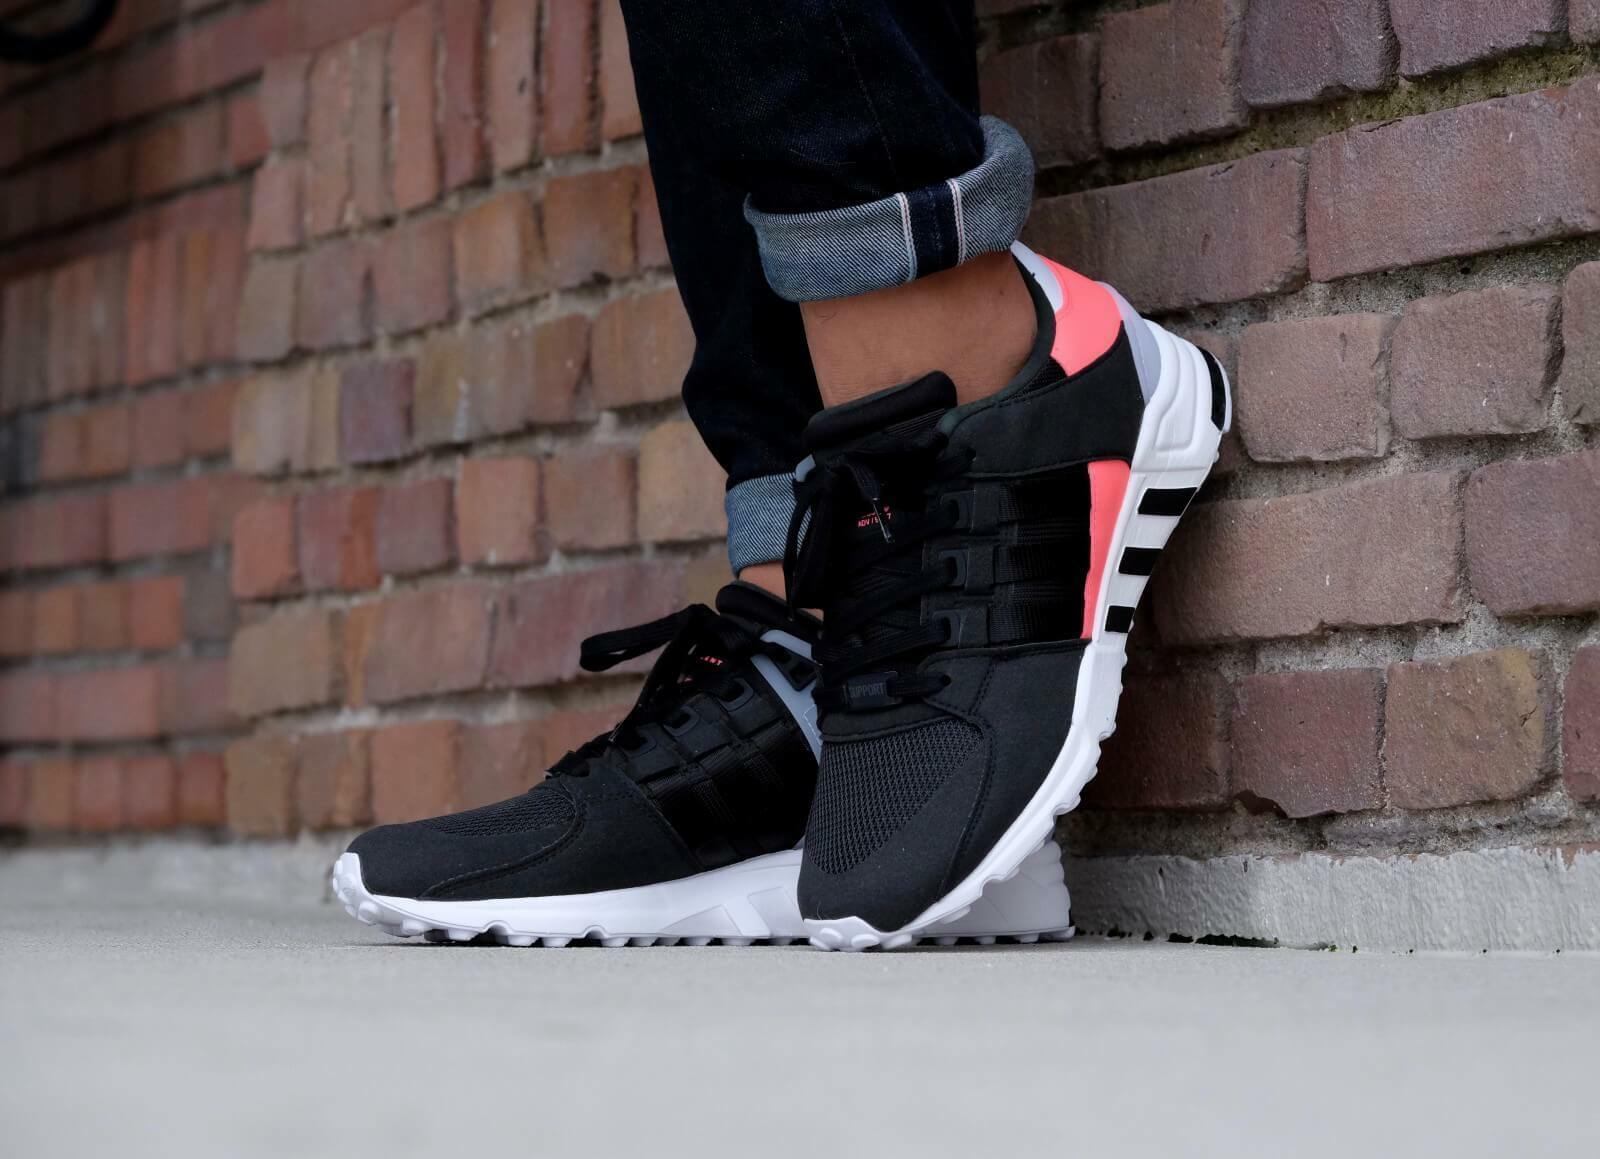 Adidas Originals EQT Support RF Noir Athletic Sneakers BB1319 Trainers US-8.5